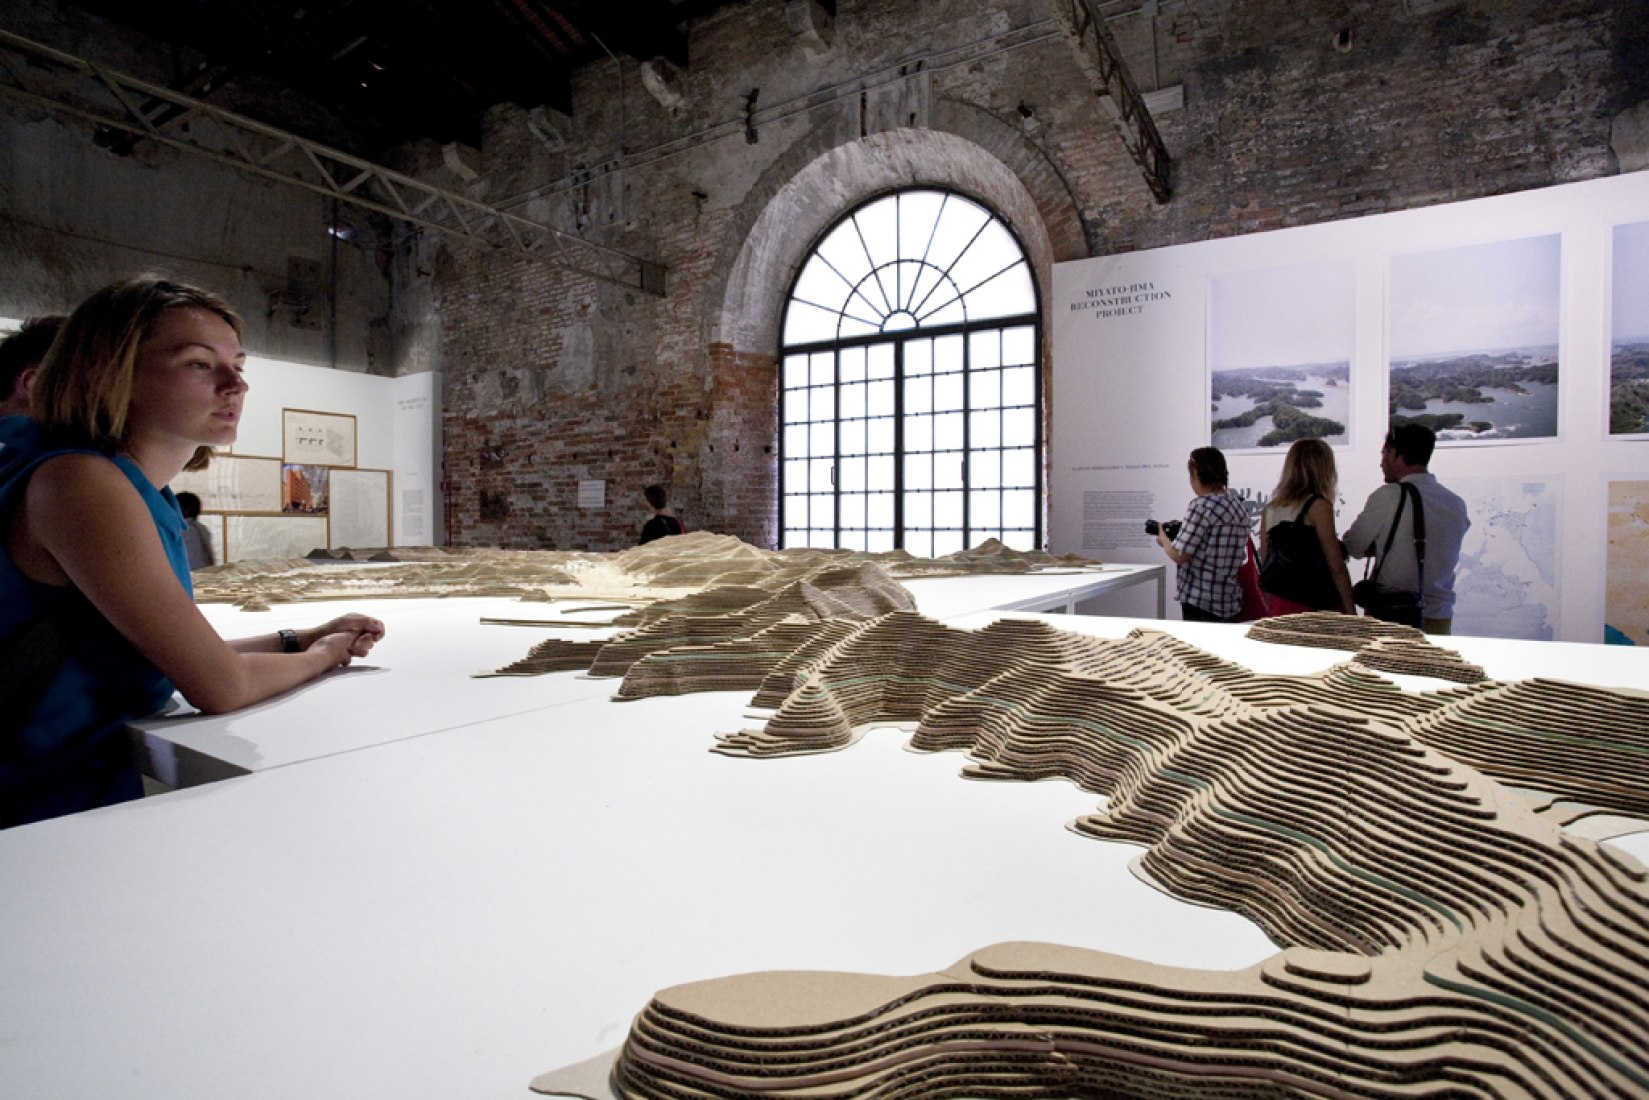 Contribution to the Venice Biennale 2012.